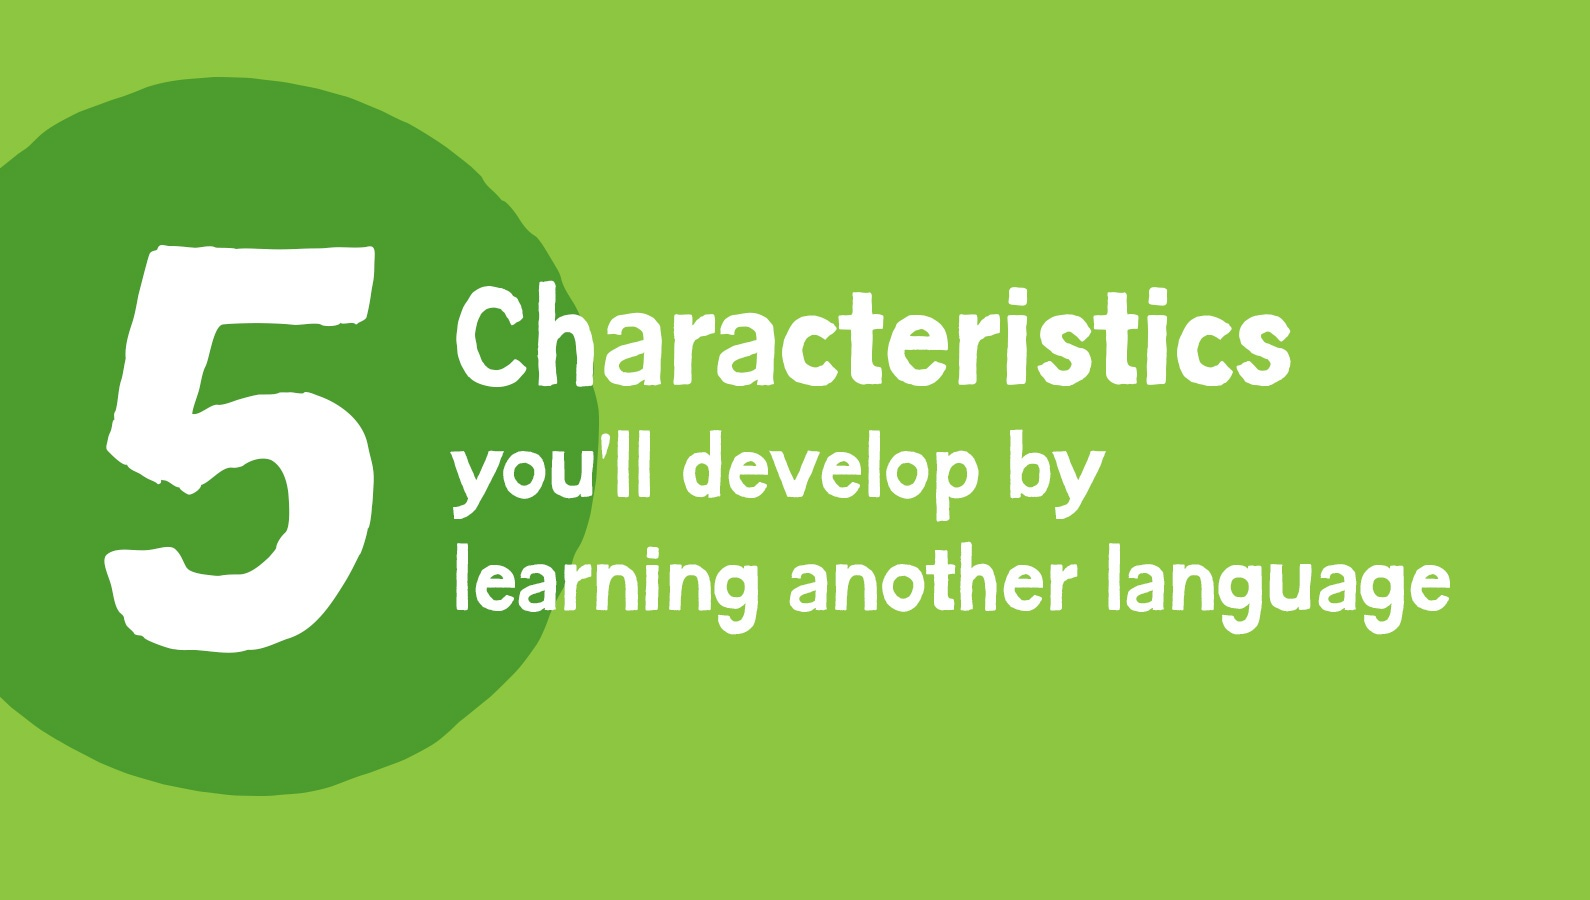 5 Characteristics you'll develop by learning another language.